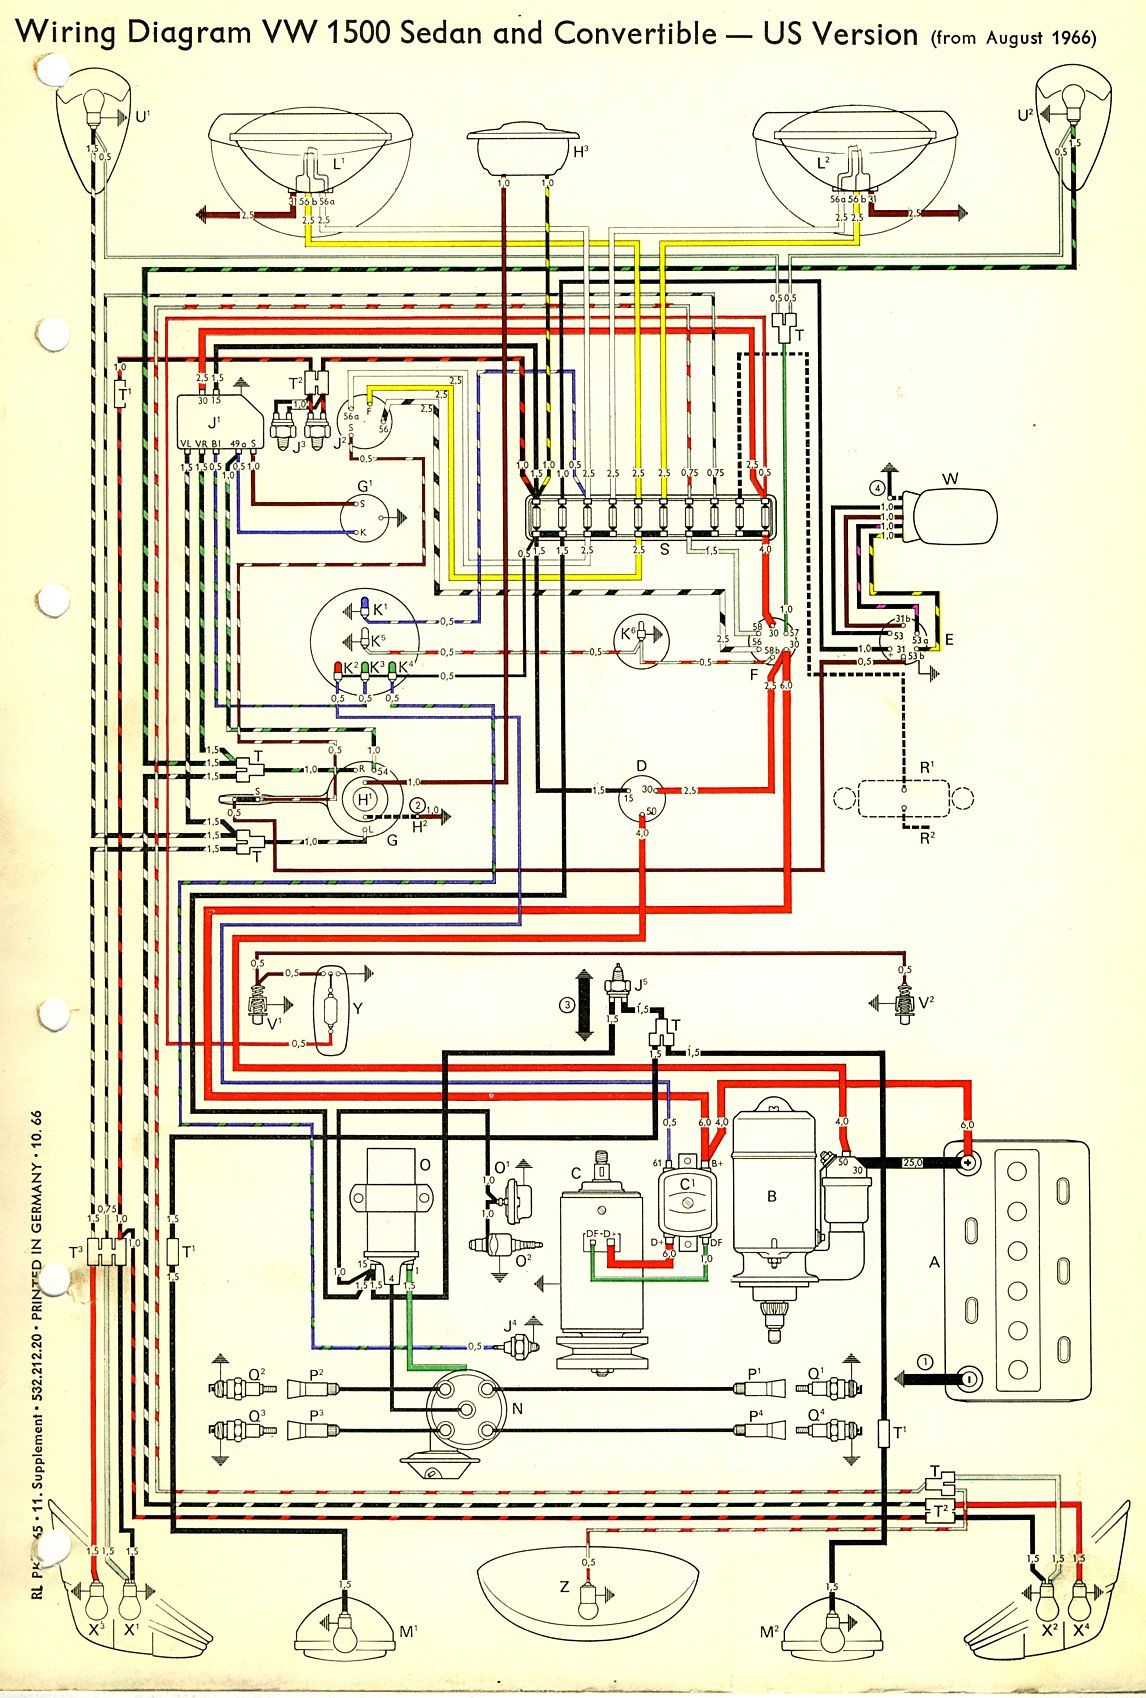 1adf990c0efb617c789fdd21338448b0 1967 beetle wiring diagram (usa) thegoldenbug com best 1967 vw 1998 vw beetle radio wiring diagram at bayanpartner.co